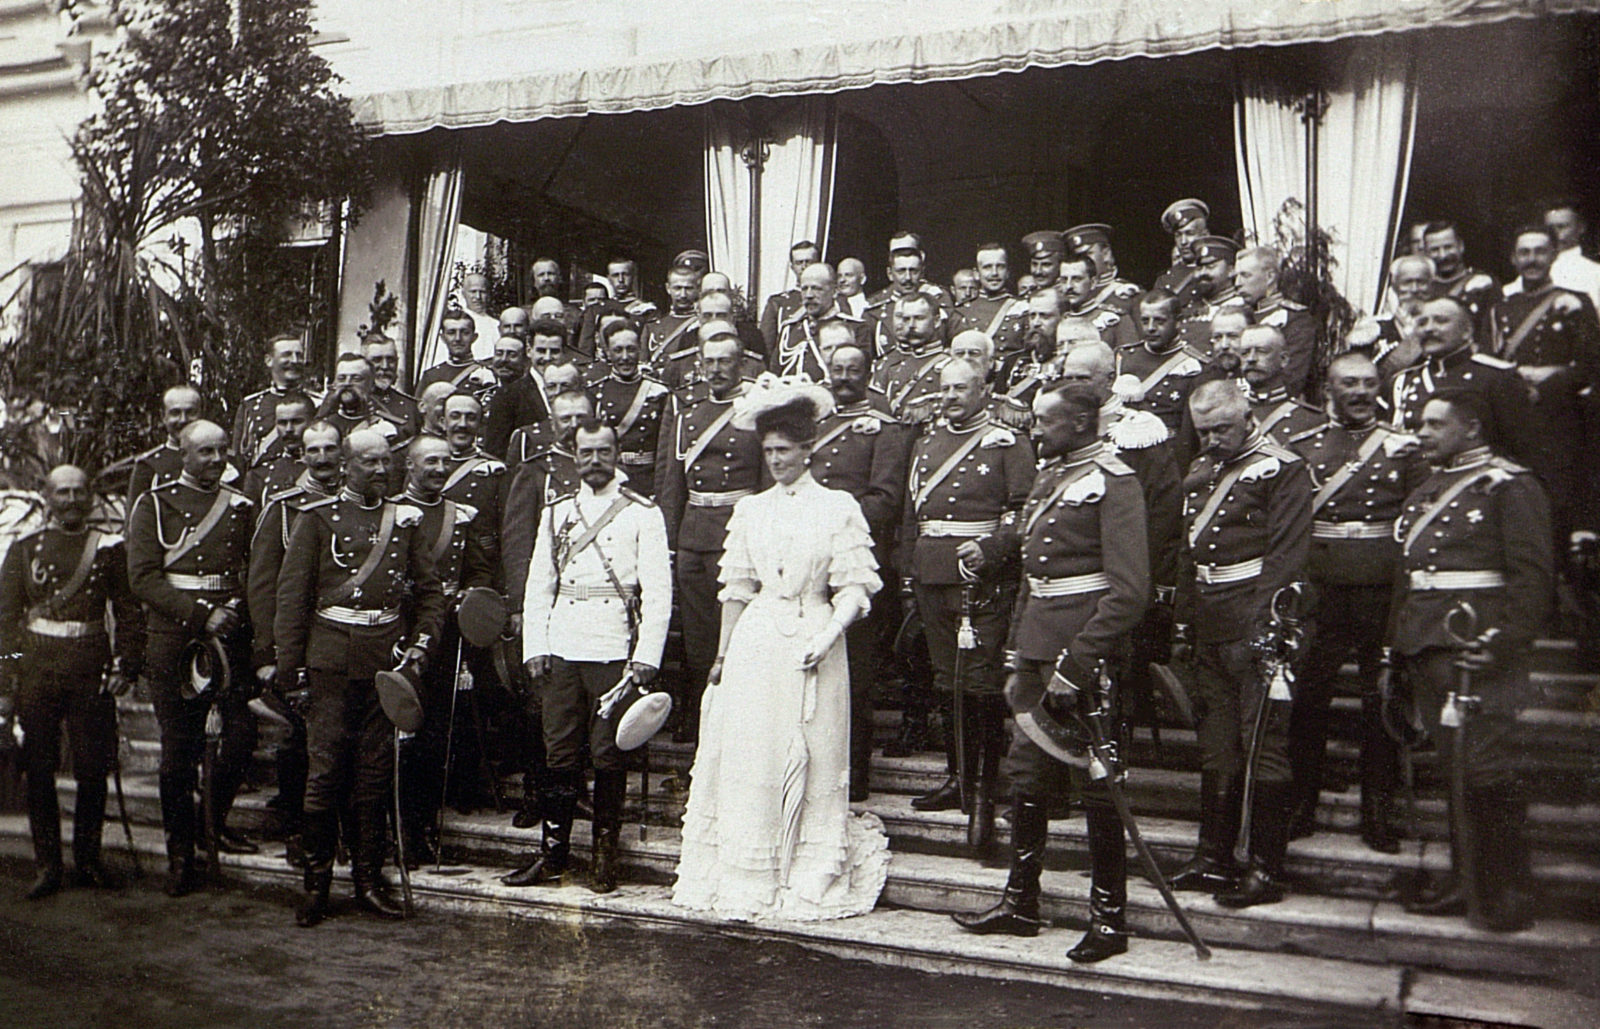 Nicholas II and Alexandra Feodorovna with officers